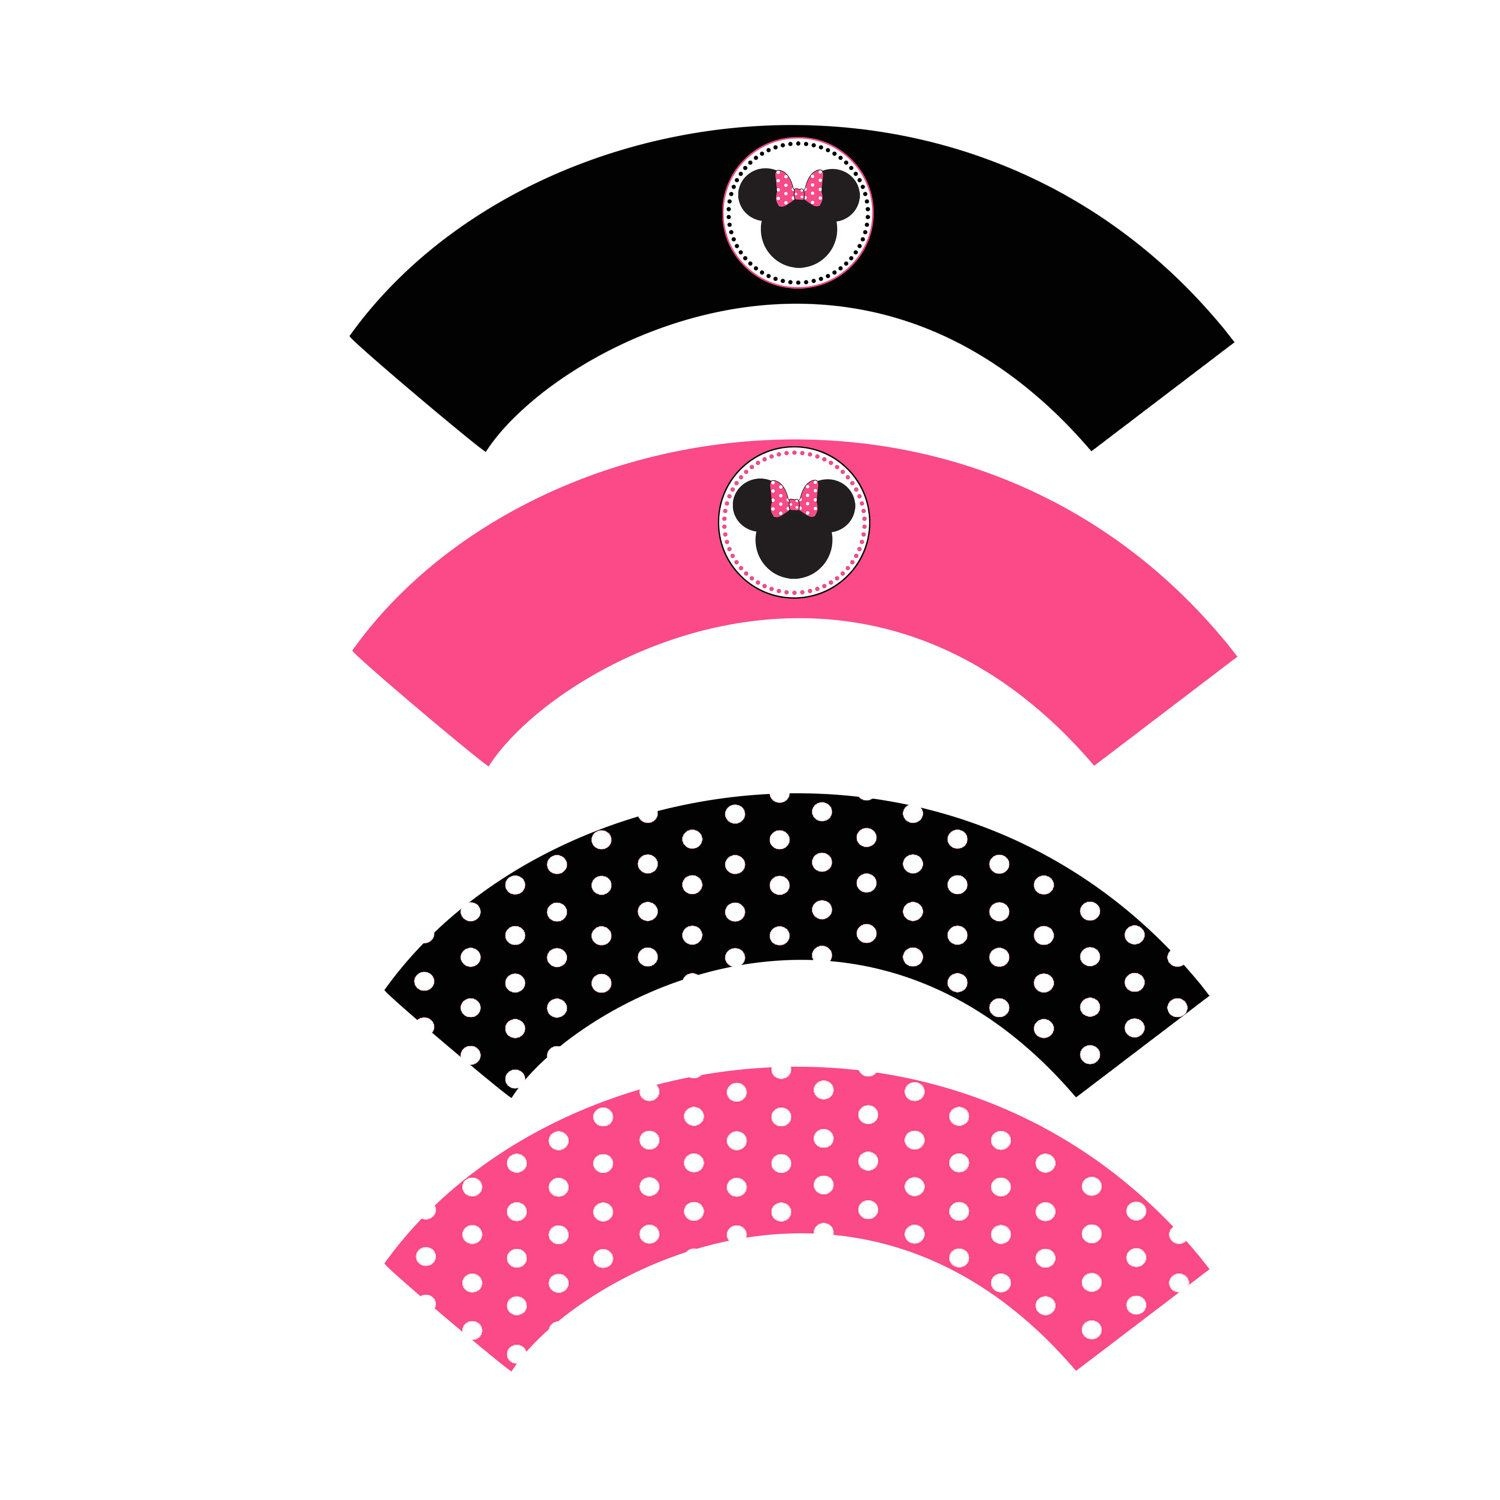 Minnie Mouse Birthday Party Printable Cupcake Wrappers Pink Black - Free Printable Minnie Mouse Cupcake Wrappers